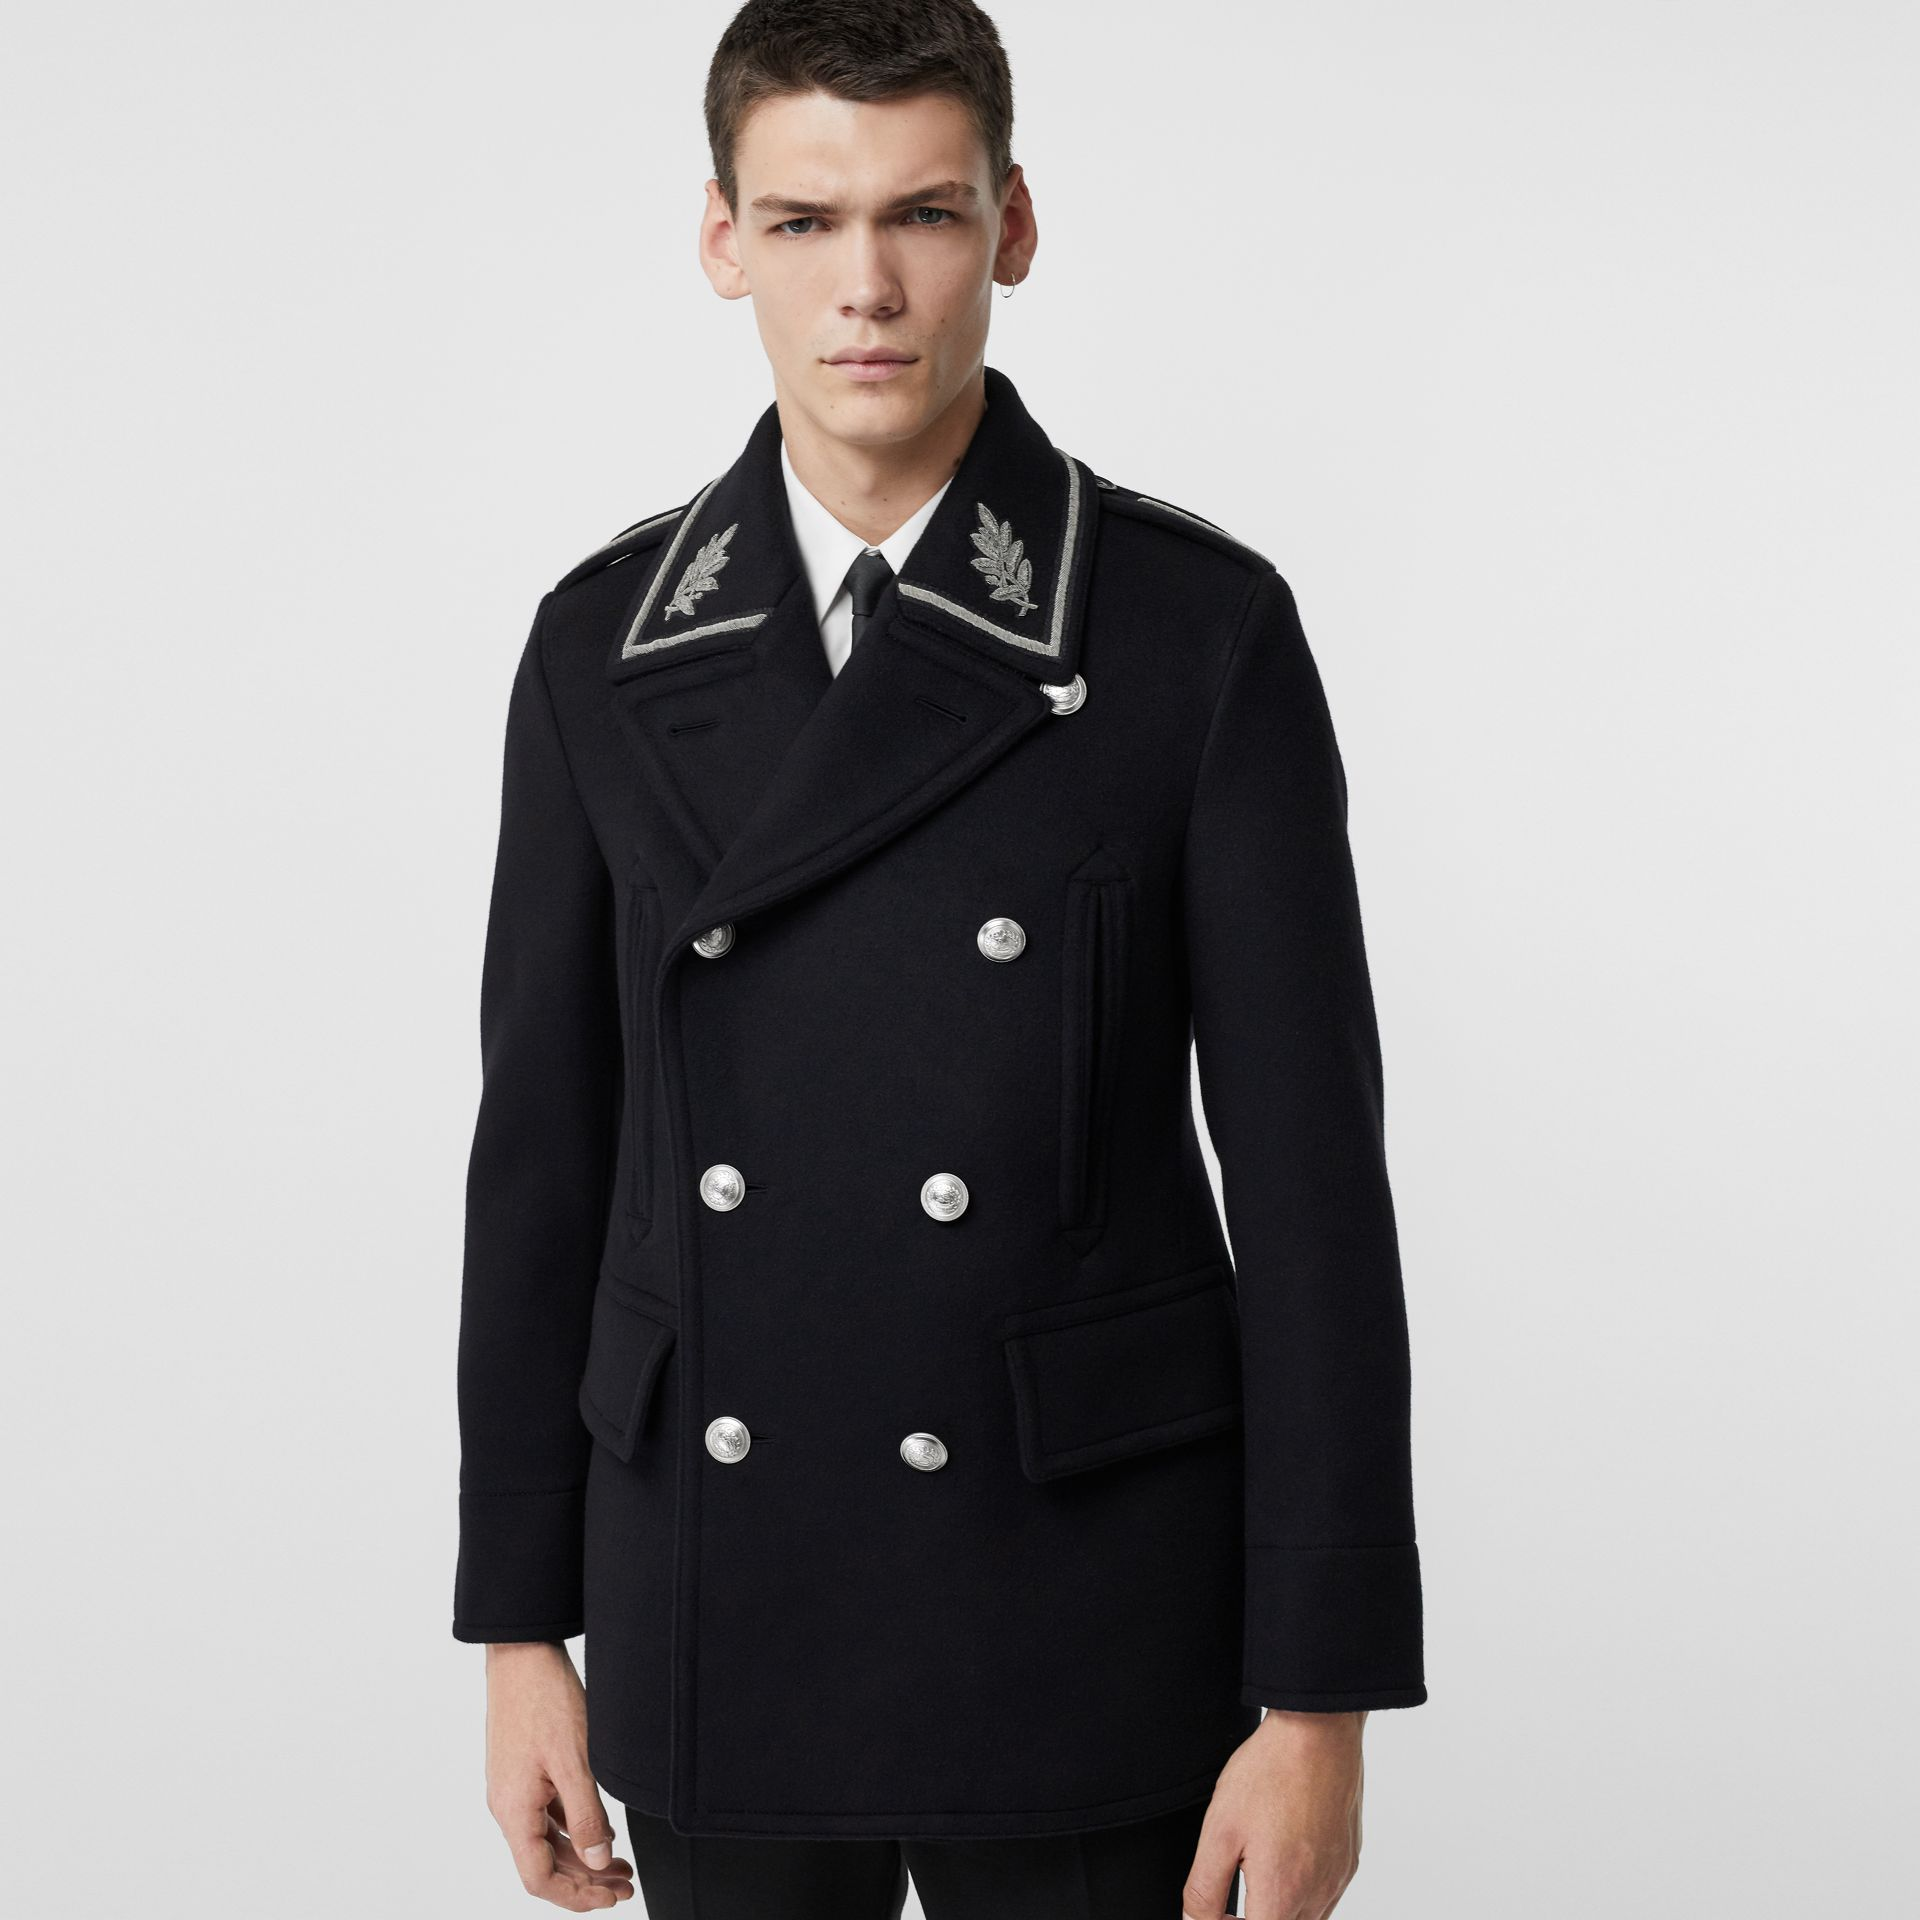 Bullion Wool Cashmere Pea Coat in Dark Navy - Men | Burberry United Kingdom - gallery image 5